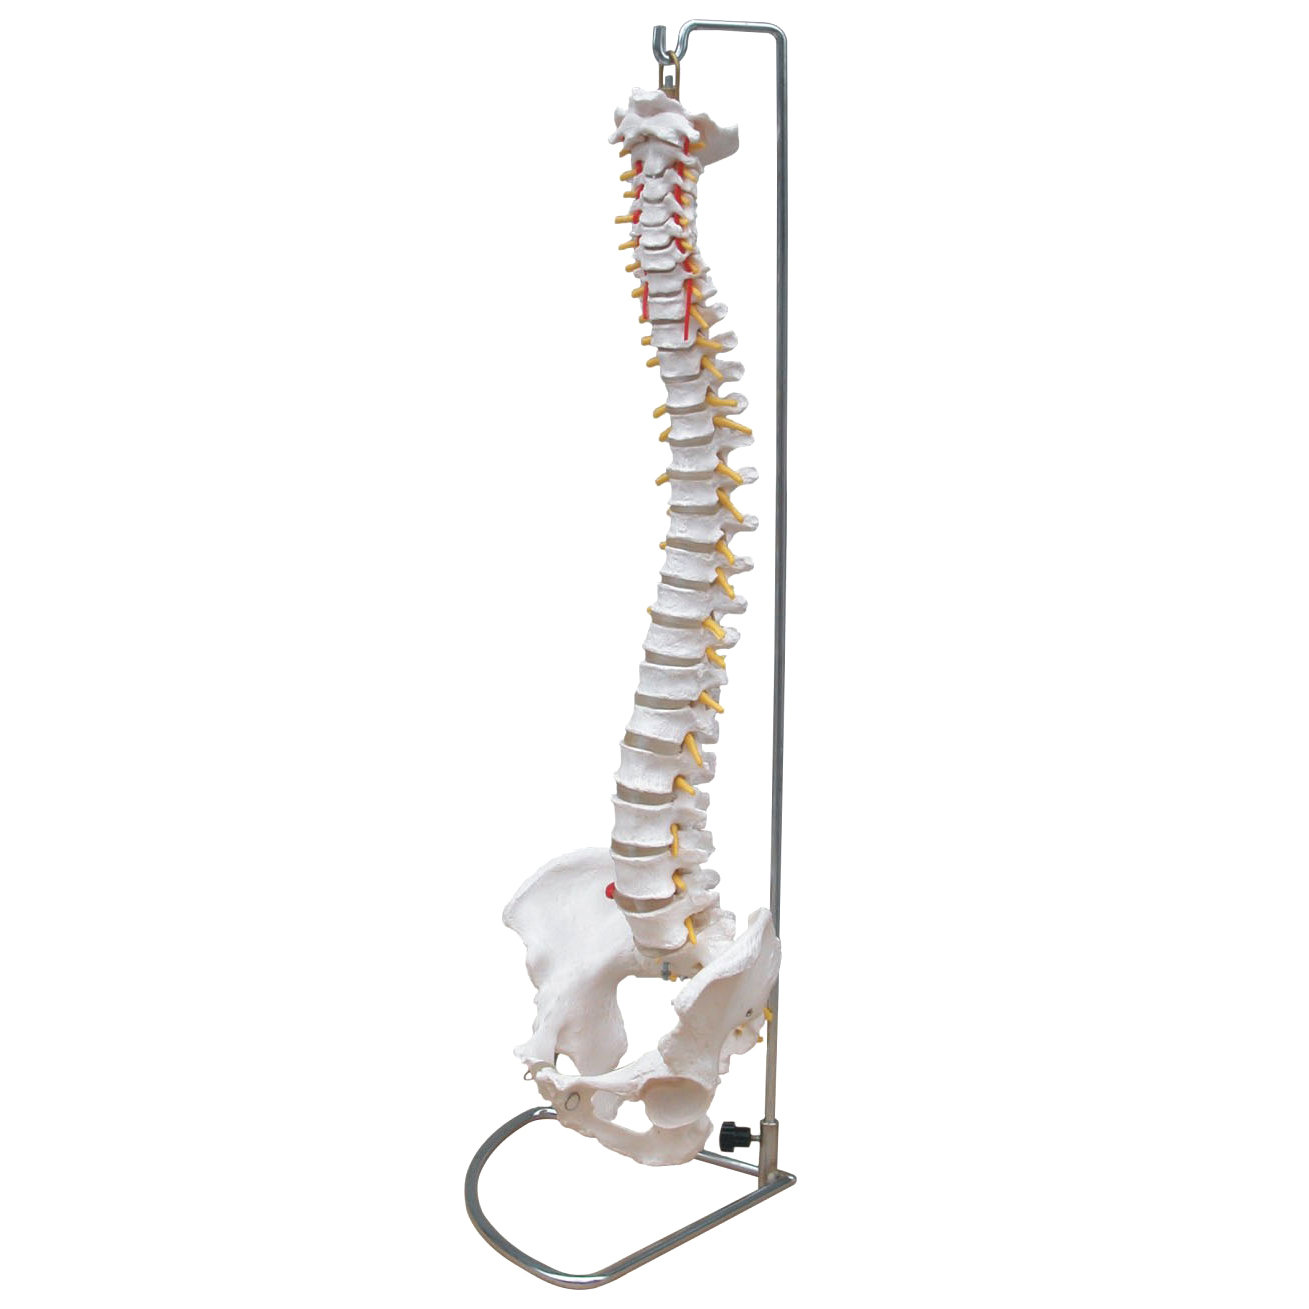 Life Size Anatomical Human Vertebral Column Spine With Pelvis Model